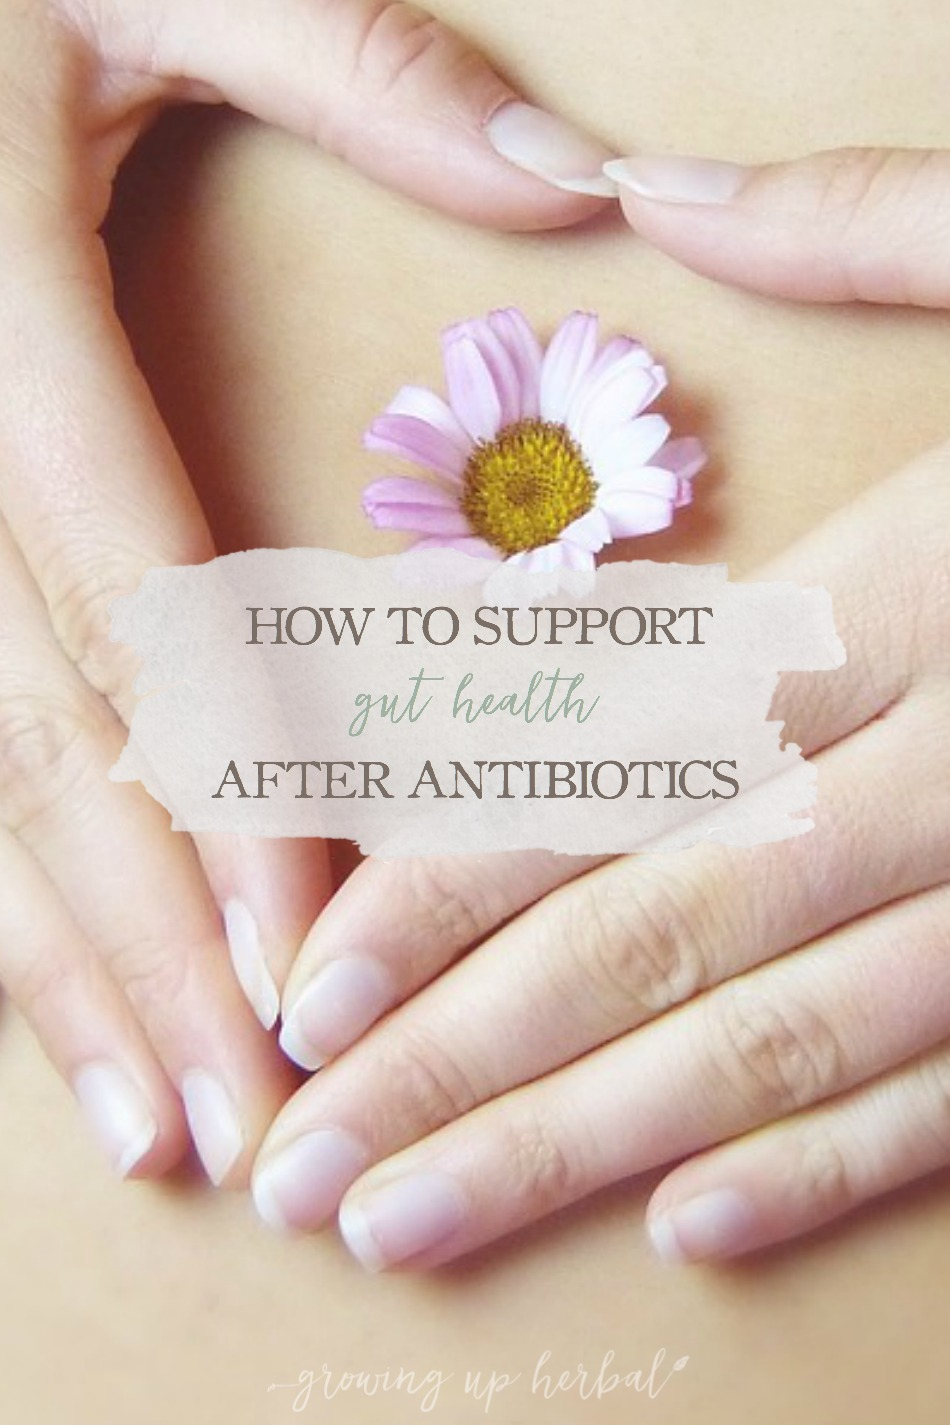 How To Support Gut Health After Antibiotics   Growing Up Herbal   If you're wondering how to support gut health after needing a round or two of antibiotics, this post will explore some of the best options.